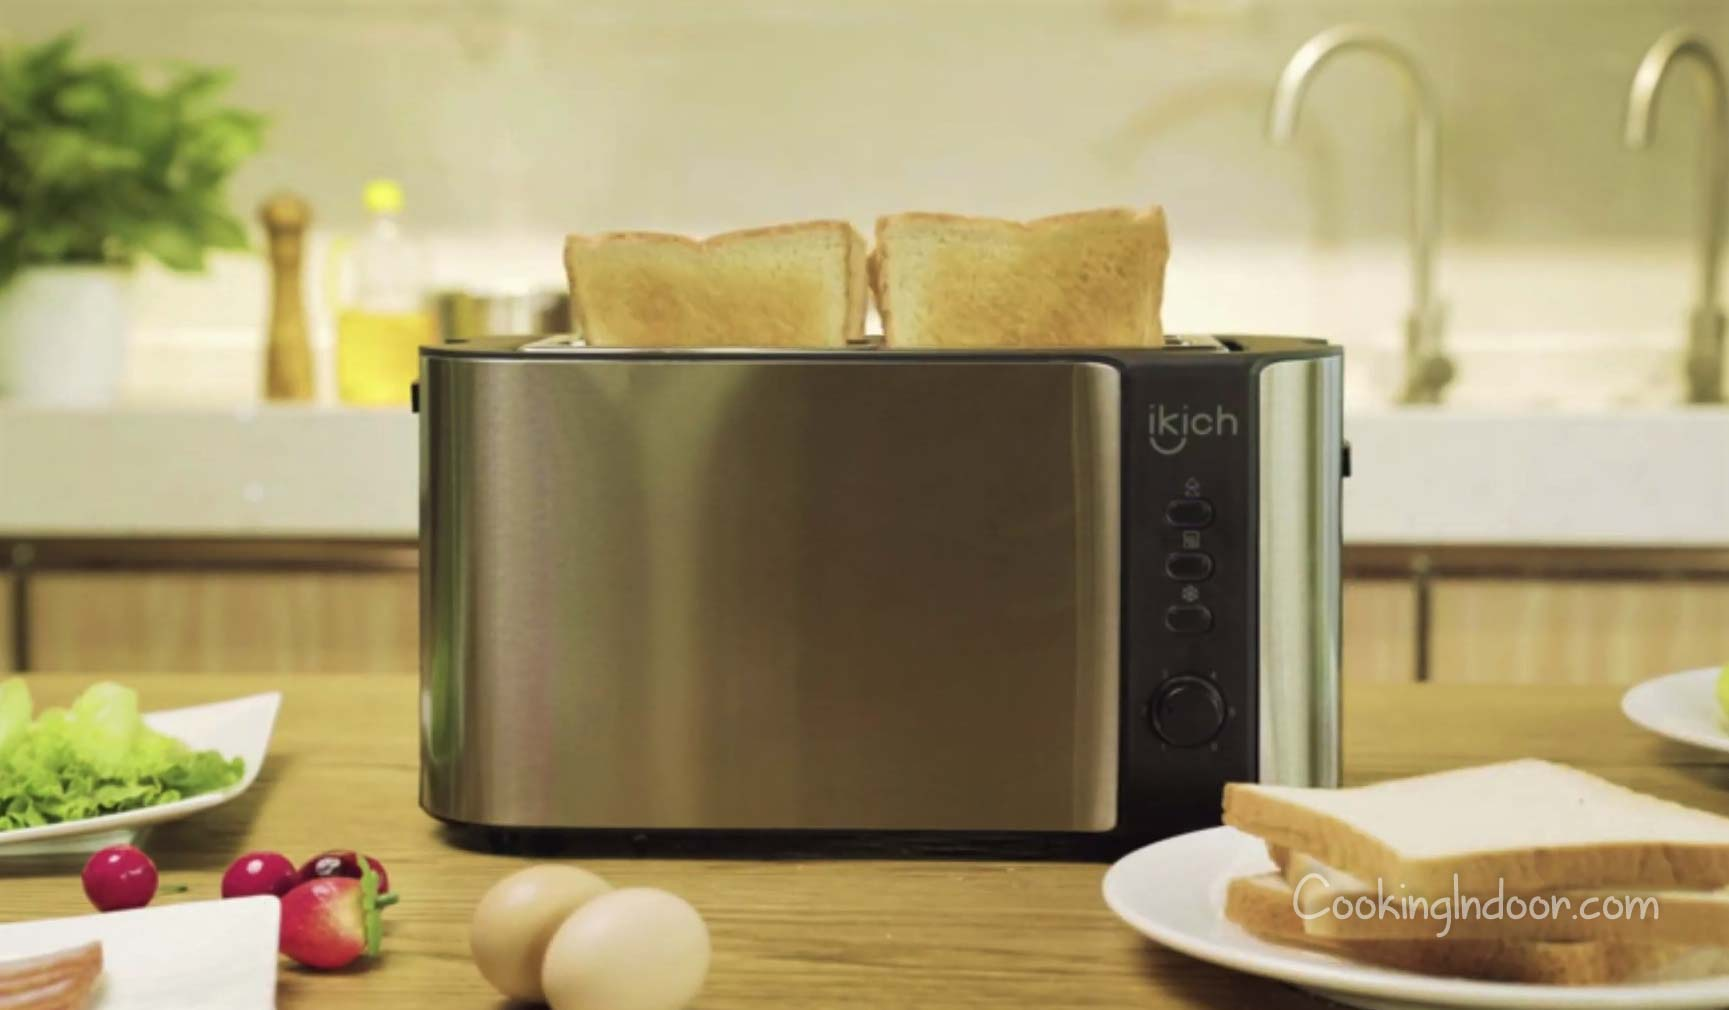 Best 4 Slice Toaster 2020.6 Best Toasters Made In Usa You Can Buy In 2019 2020